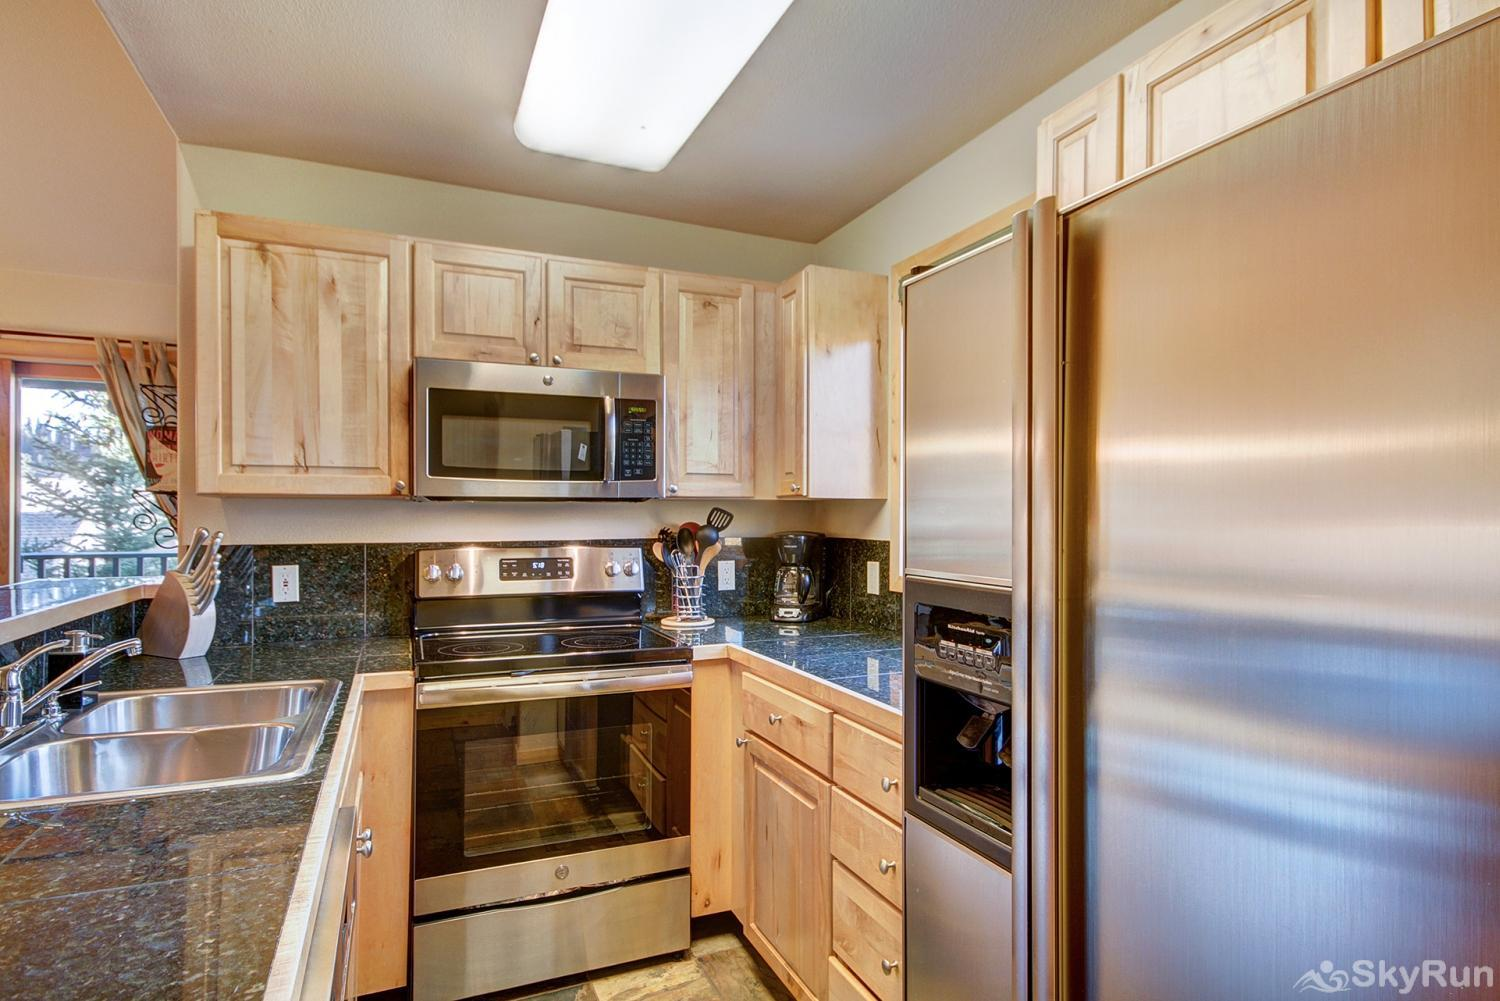 Twin Elk Lodge D16 Fully equipped kitchen updated with stainless steel appliances